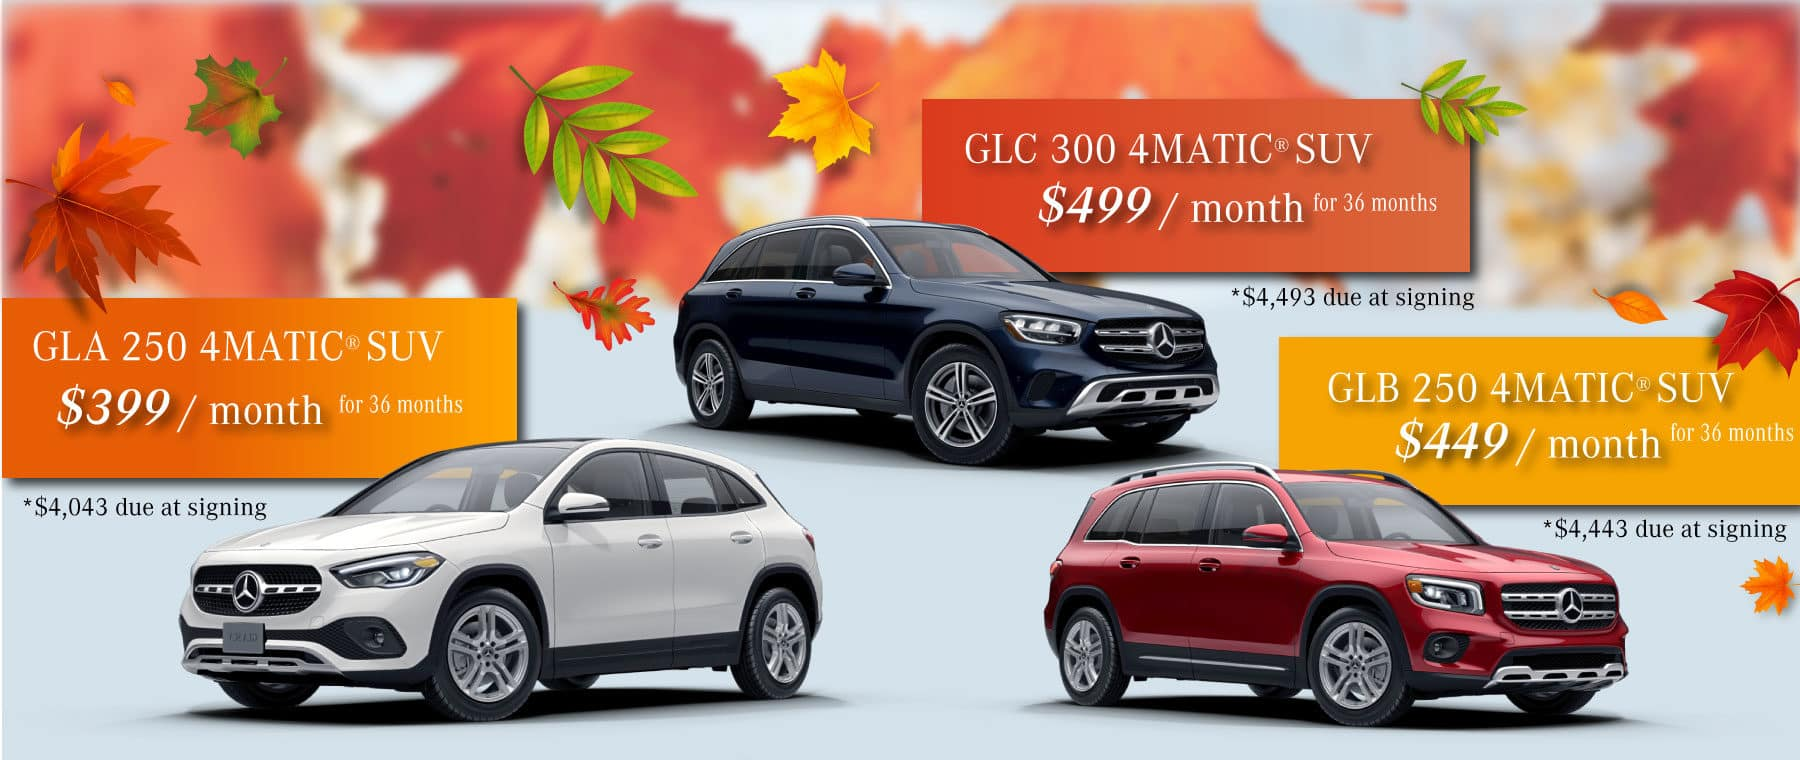 mercedes-benz of west chester new merecedes lease specials